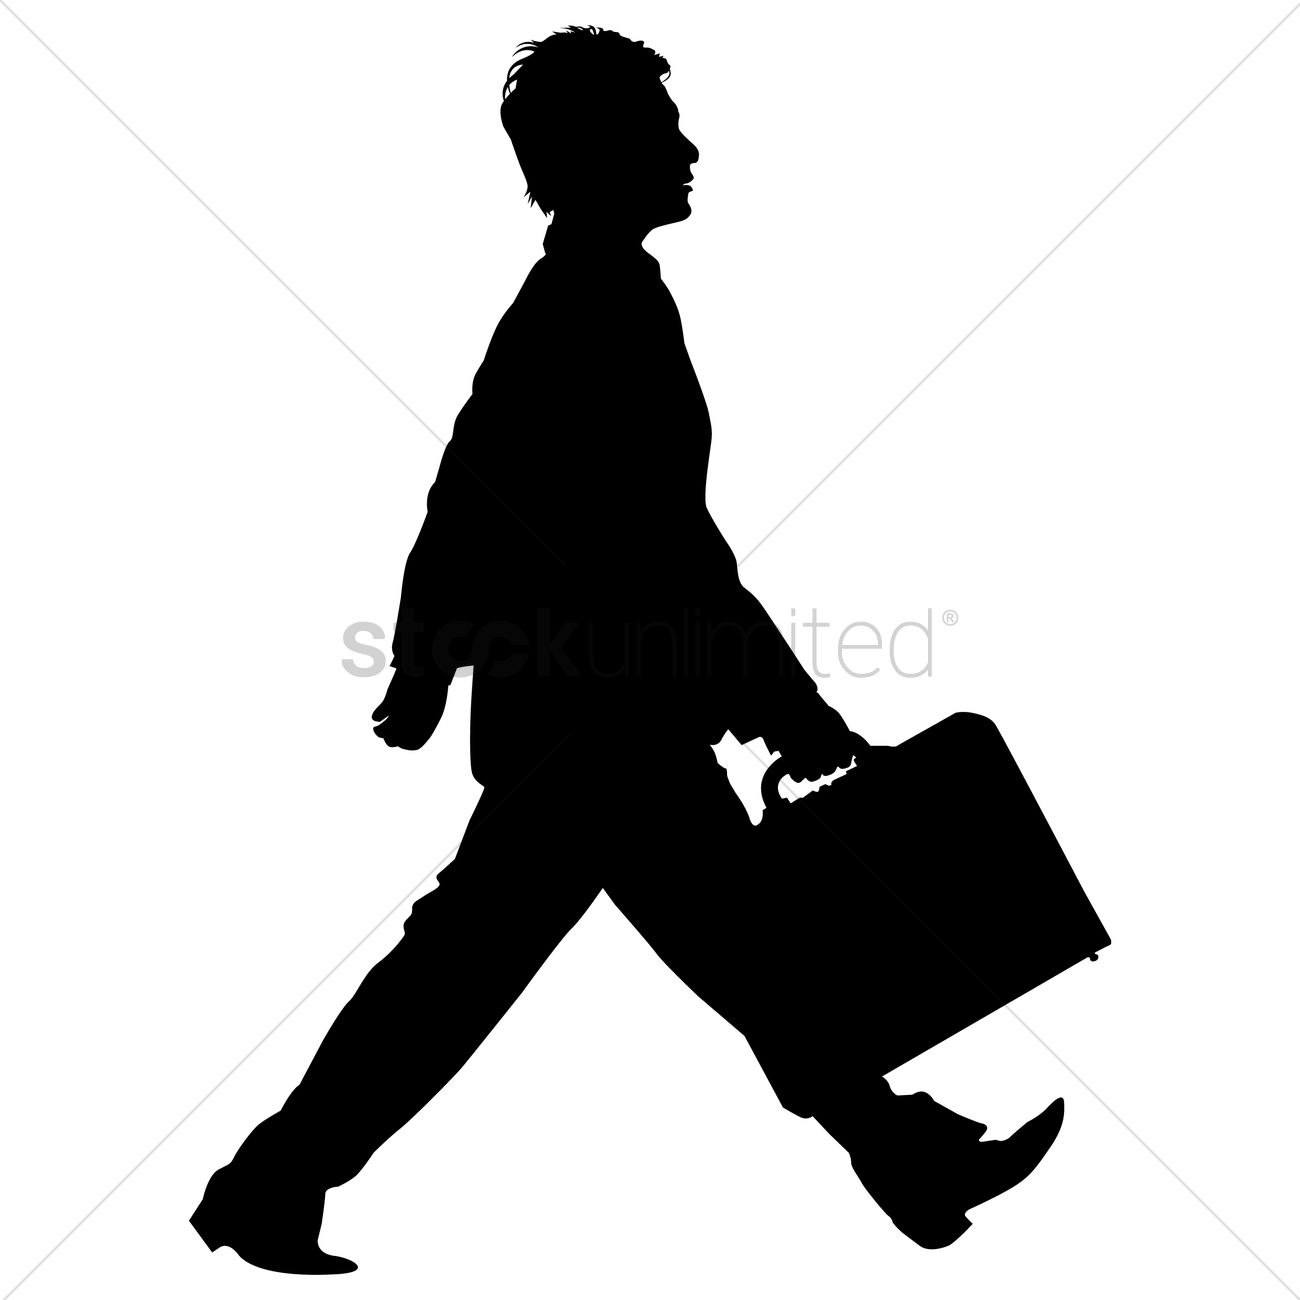 businessman walking with briefcase silhouette vector image Girl Running Clip Art stick person running clipart